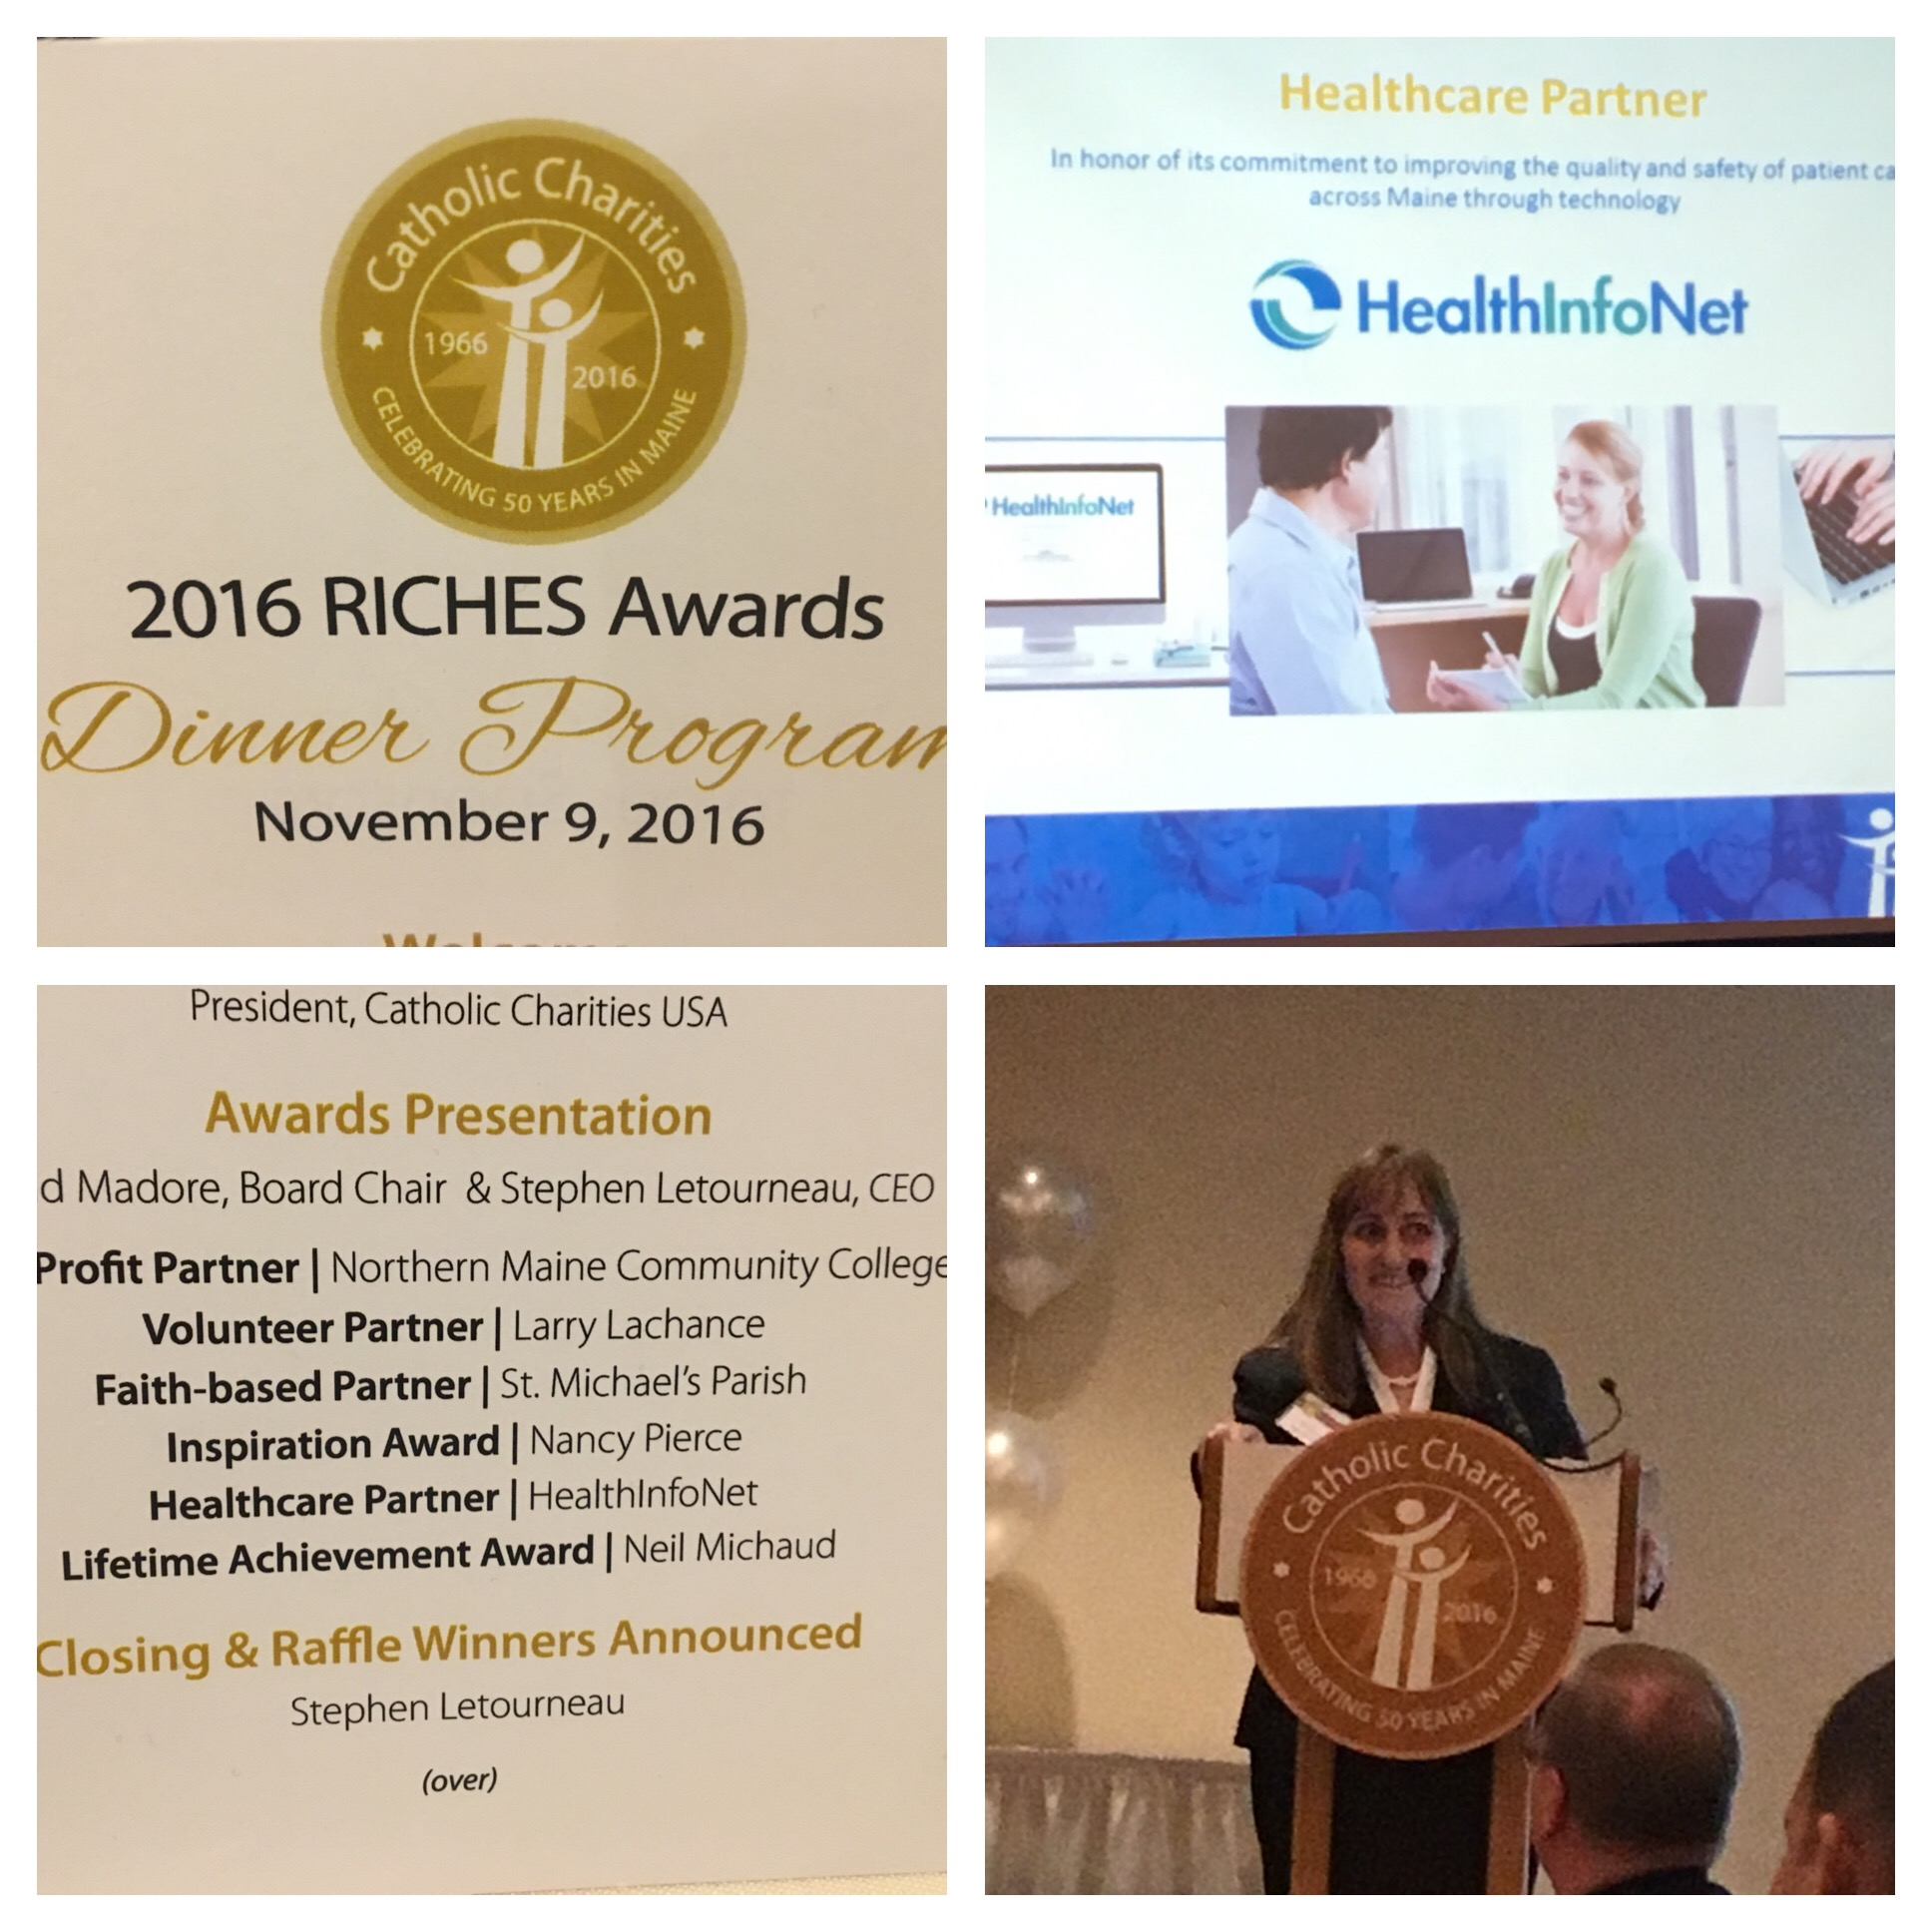 HealthInfoNet Receives Healthcare Partner Award from Catholic Charities Maine